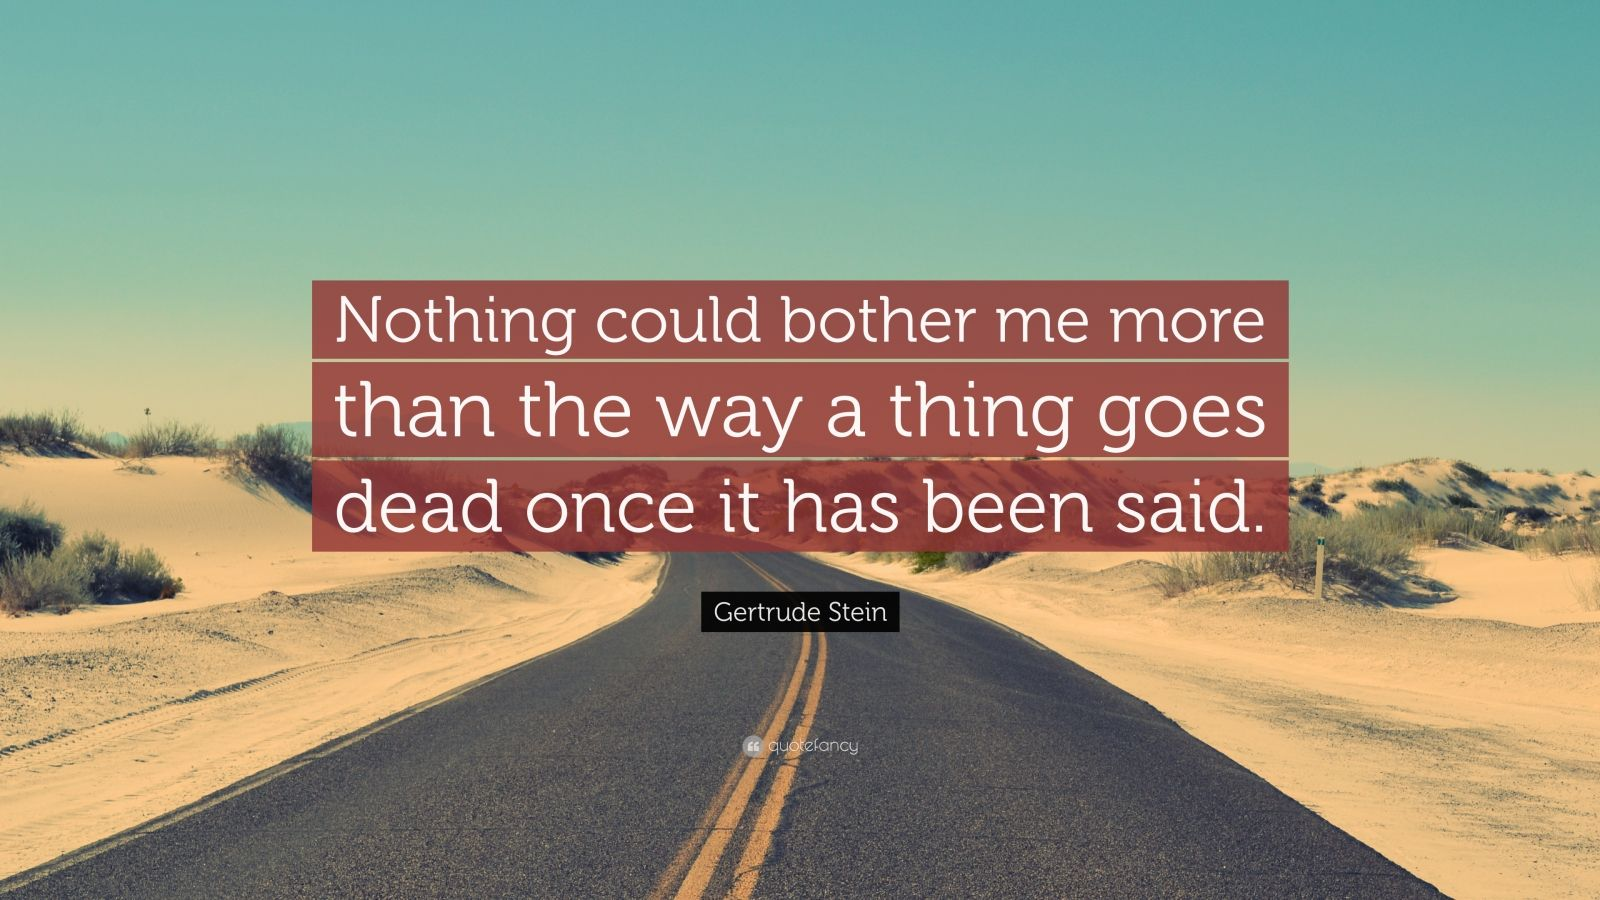 """Gertrude Stein Quote: """"Nothing could bother me more than the way a thing goes dead once it has been said."""""""